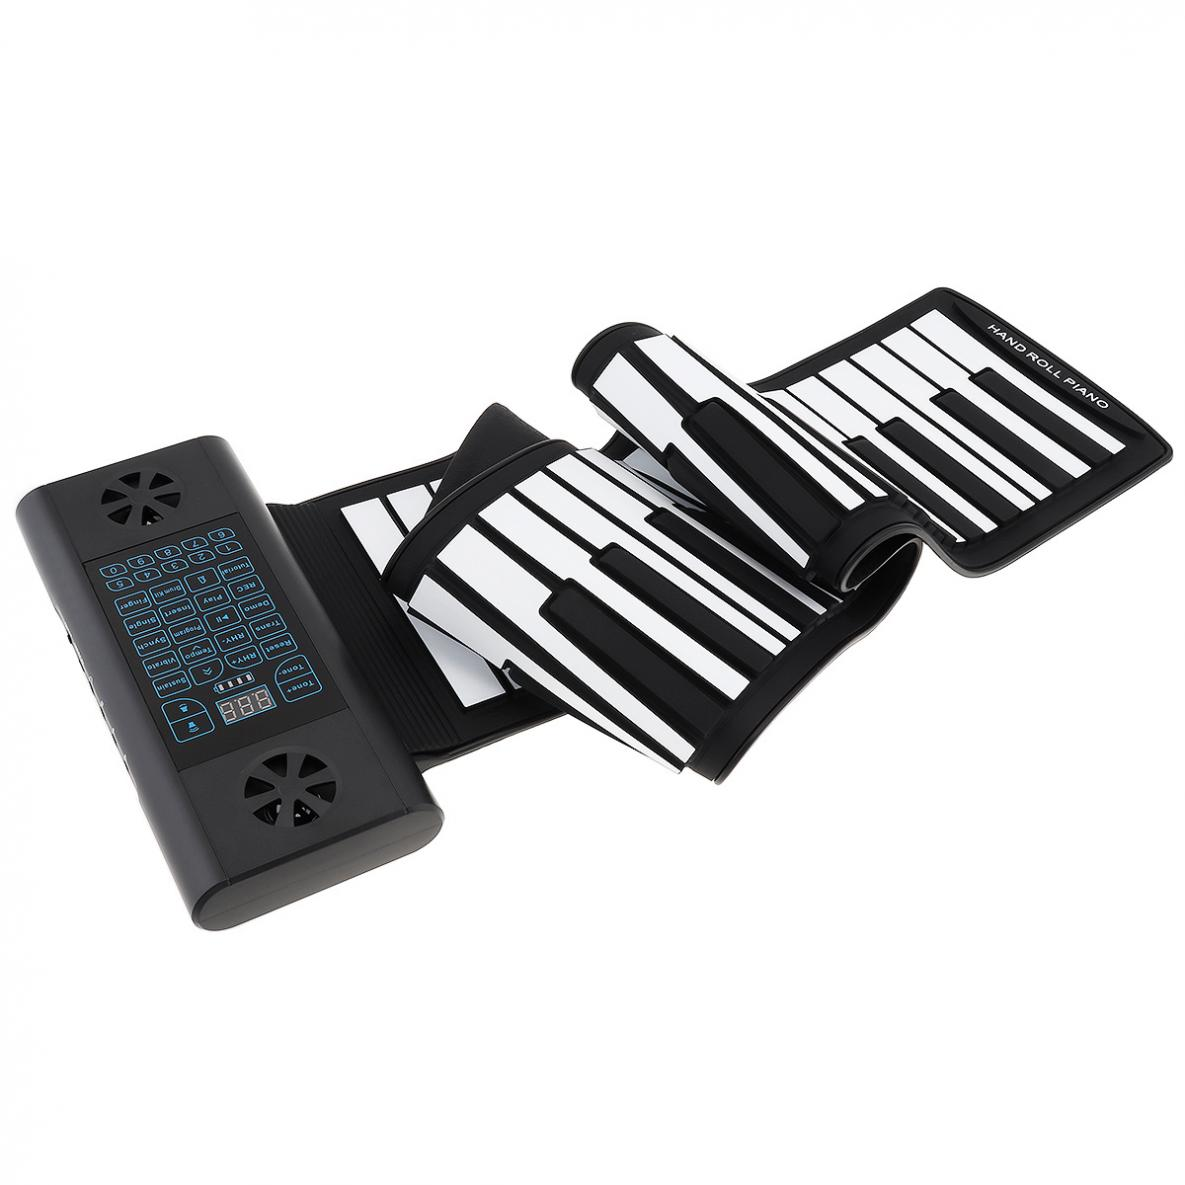 61 Keys MIDI Roll Up Electronic Piano Rechargeable Silicone Flexible Keyboard Organ Built-in 2 Speakers Support Audio enlarge